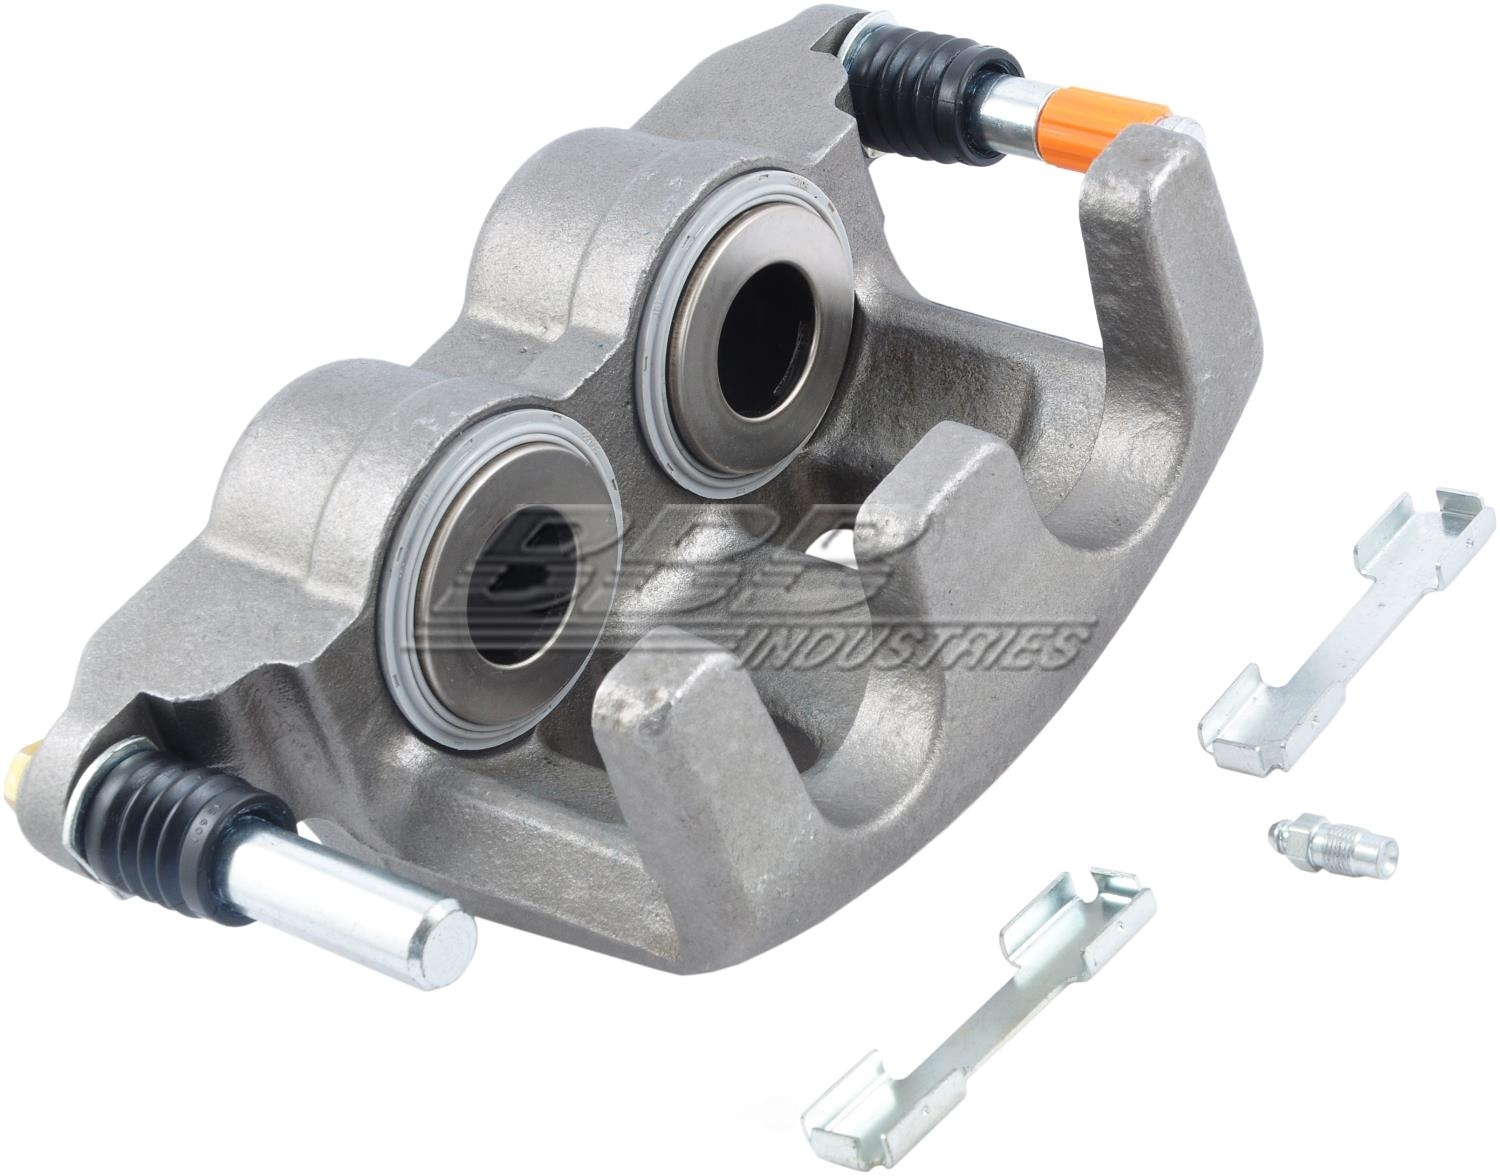 BBB INDUSTRIES - Reman Caliper W/installation Hardware (Front Left) - BBA 97-17010D